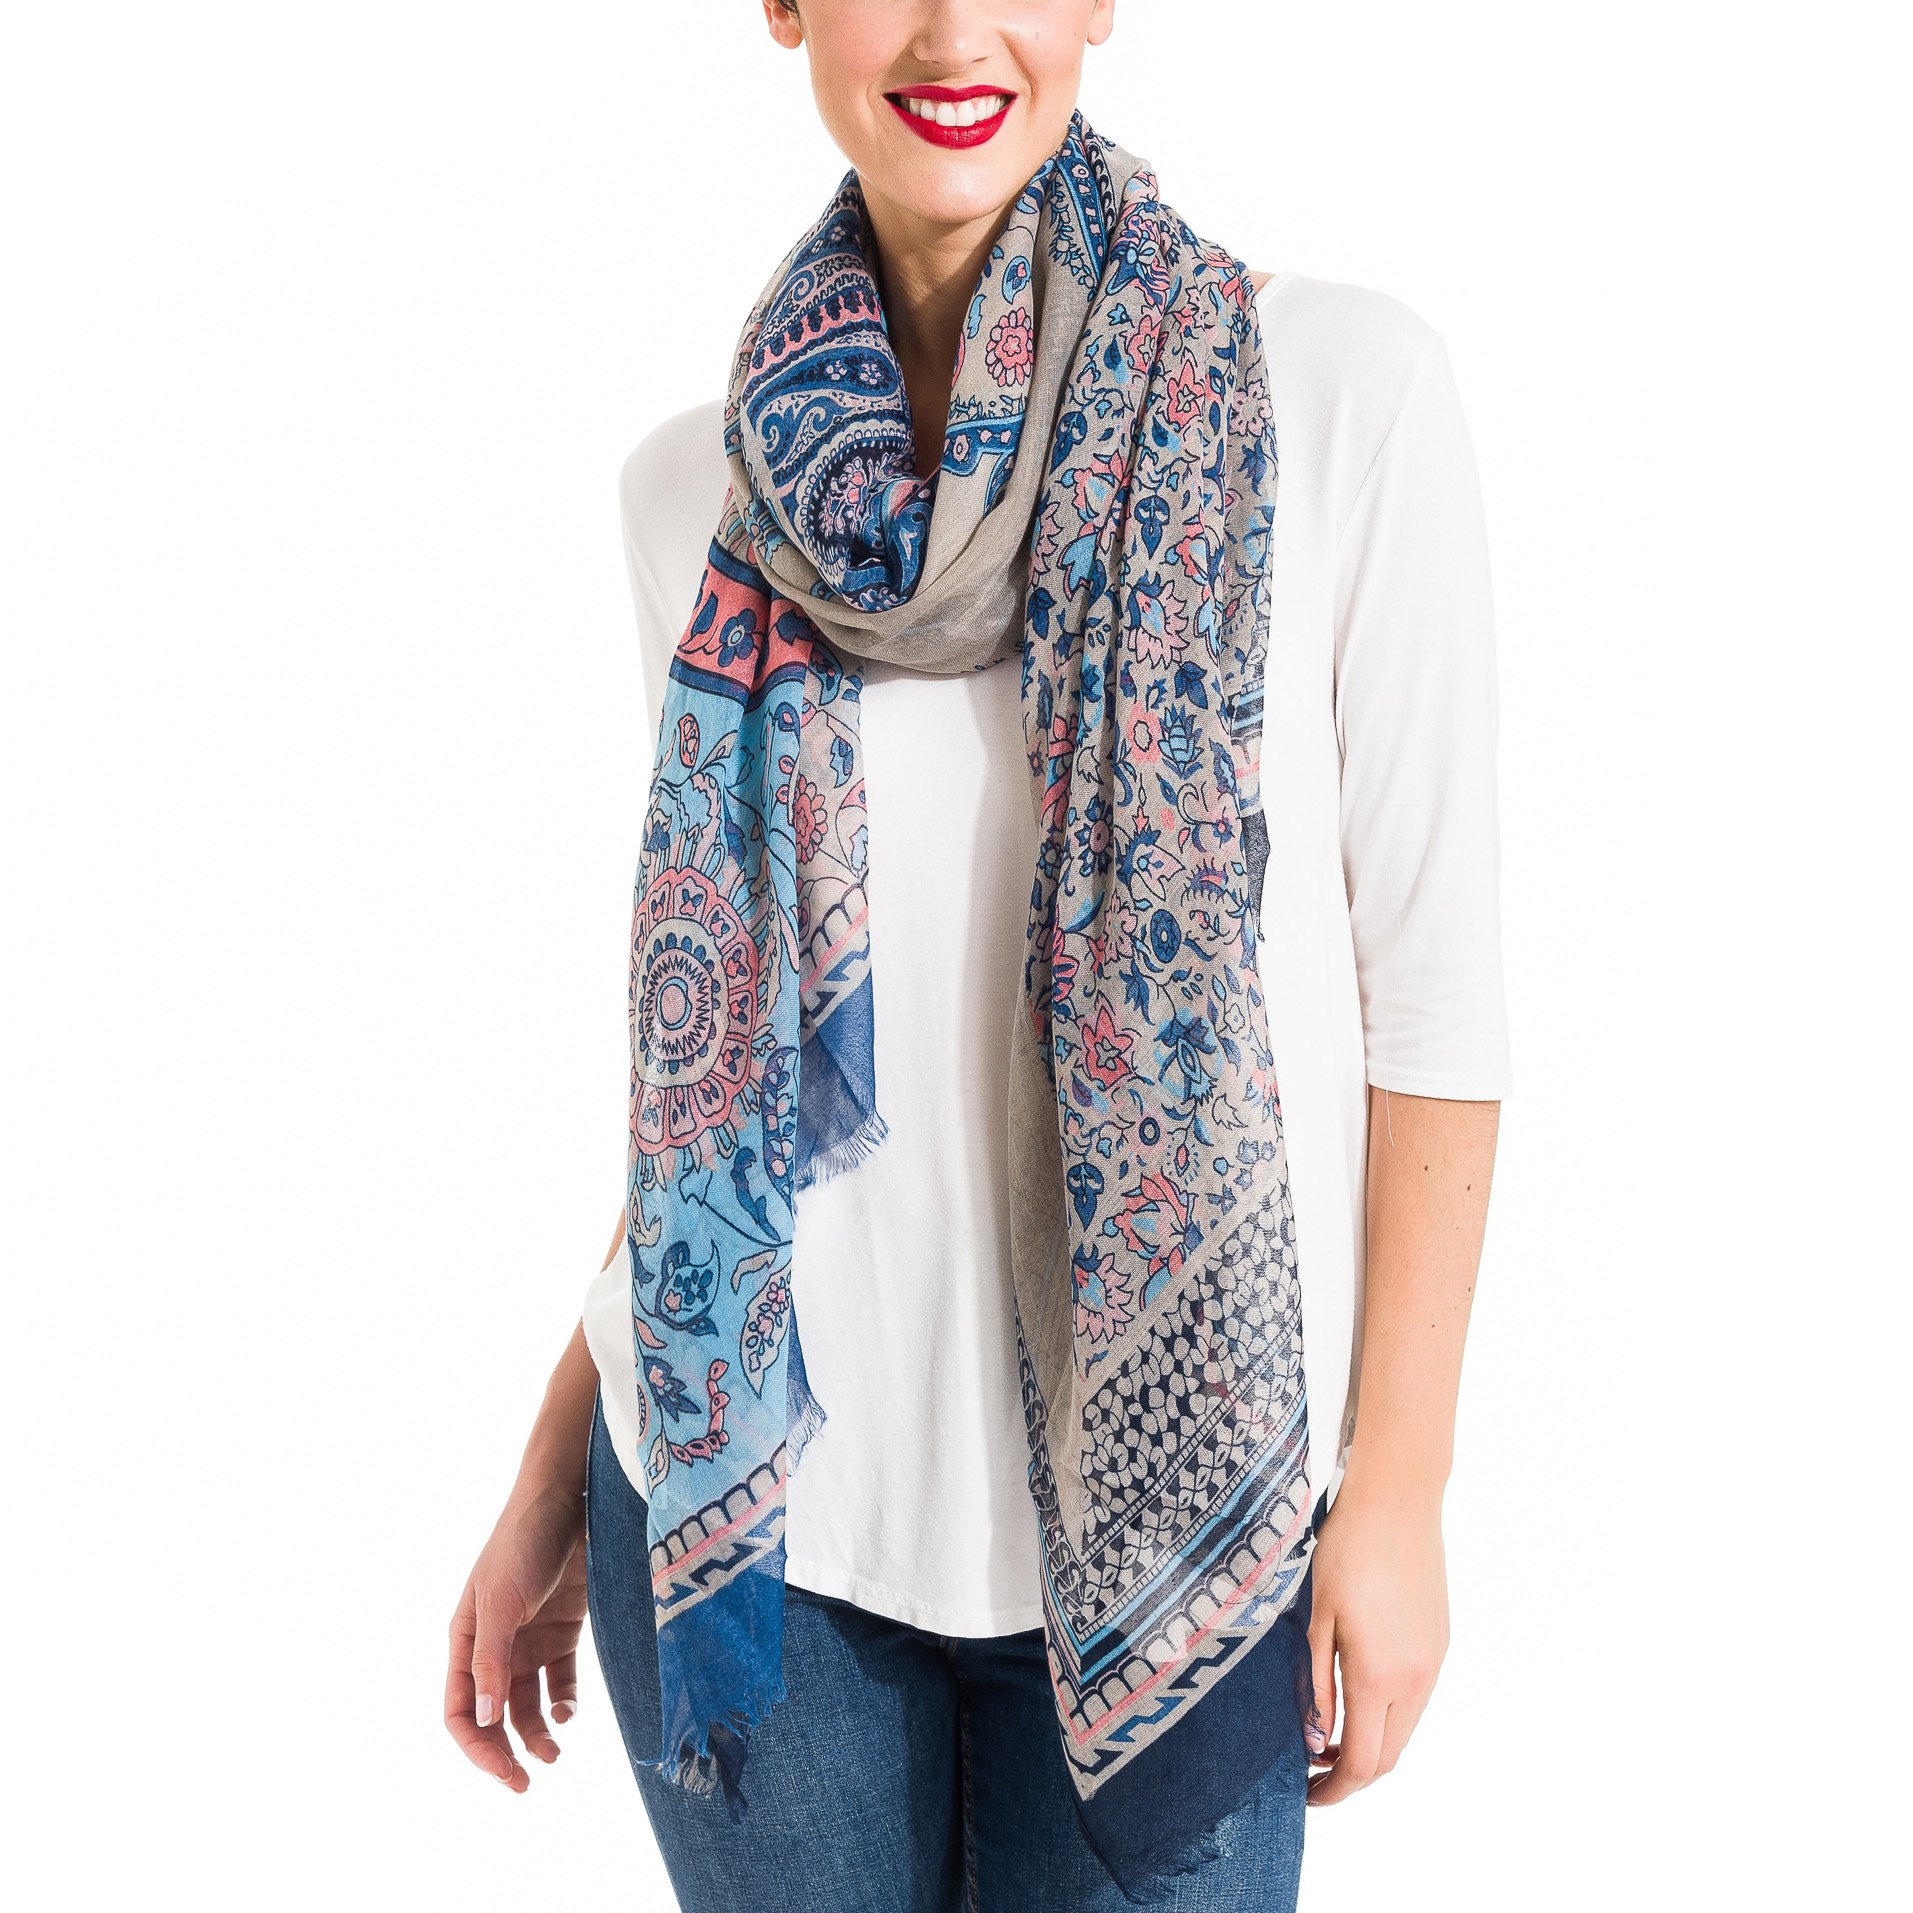 Scarf for Women Lightweight Paisley Fashion Fall Winter Scarves Shawl Wraps (SS28)